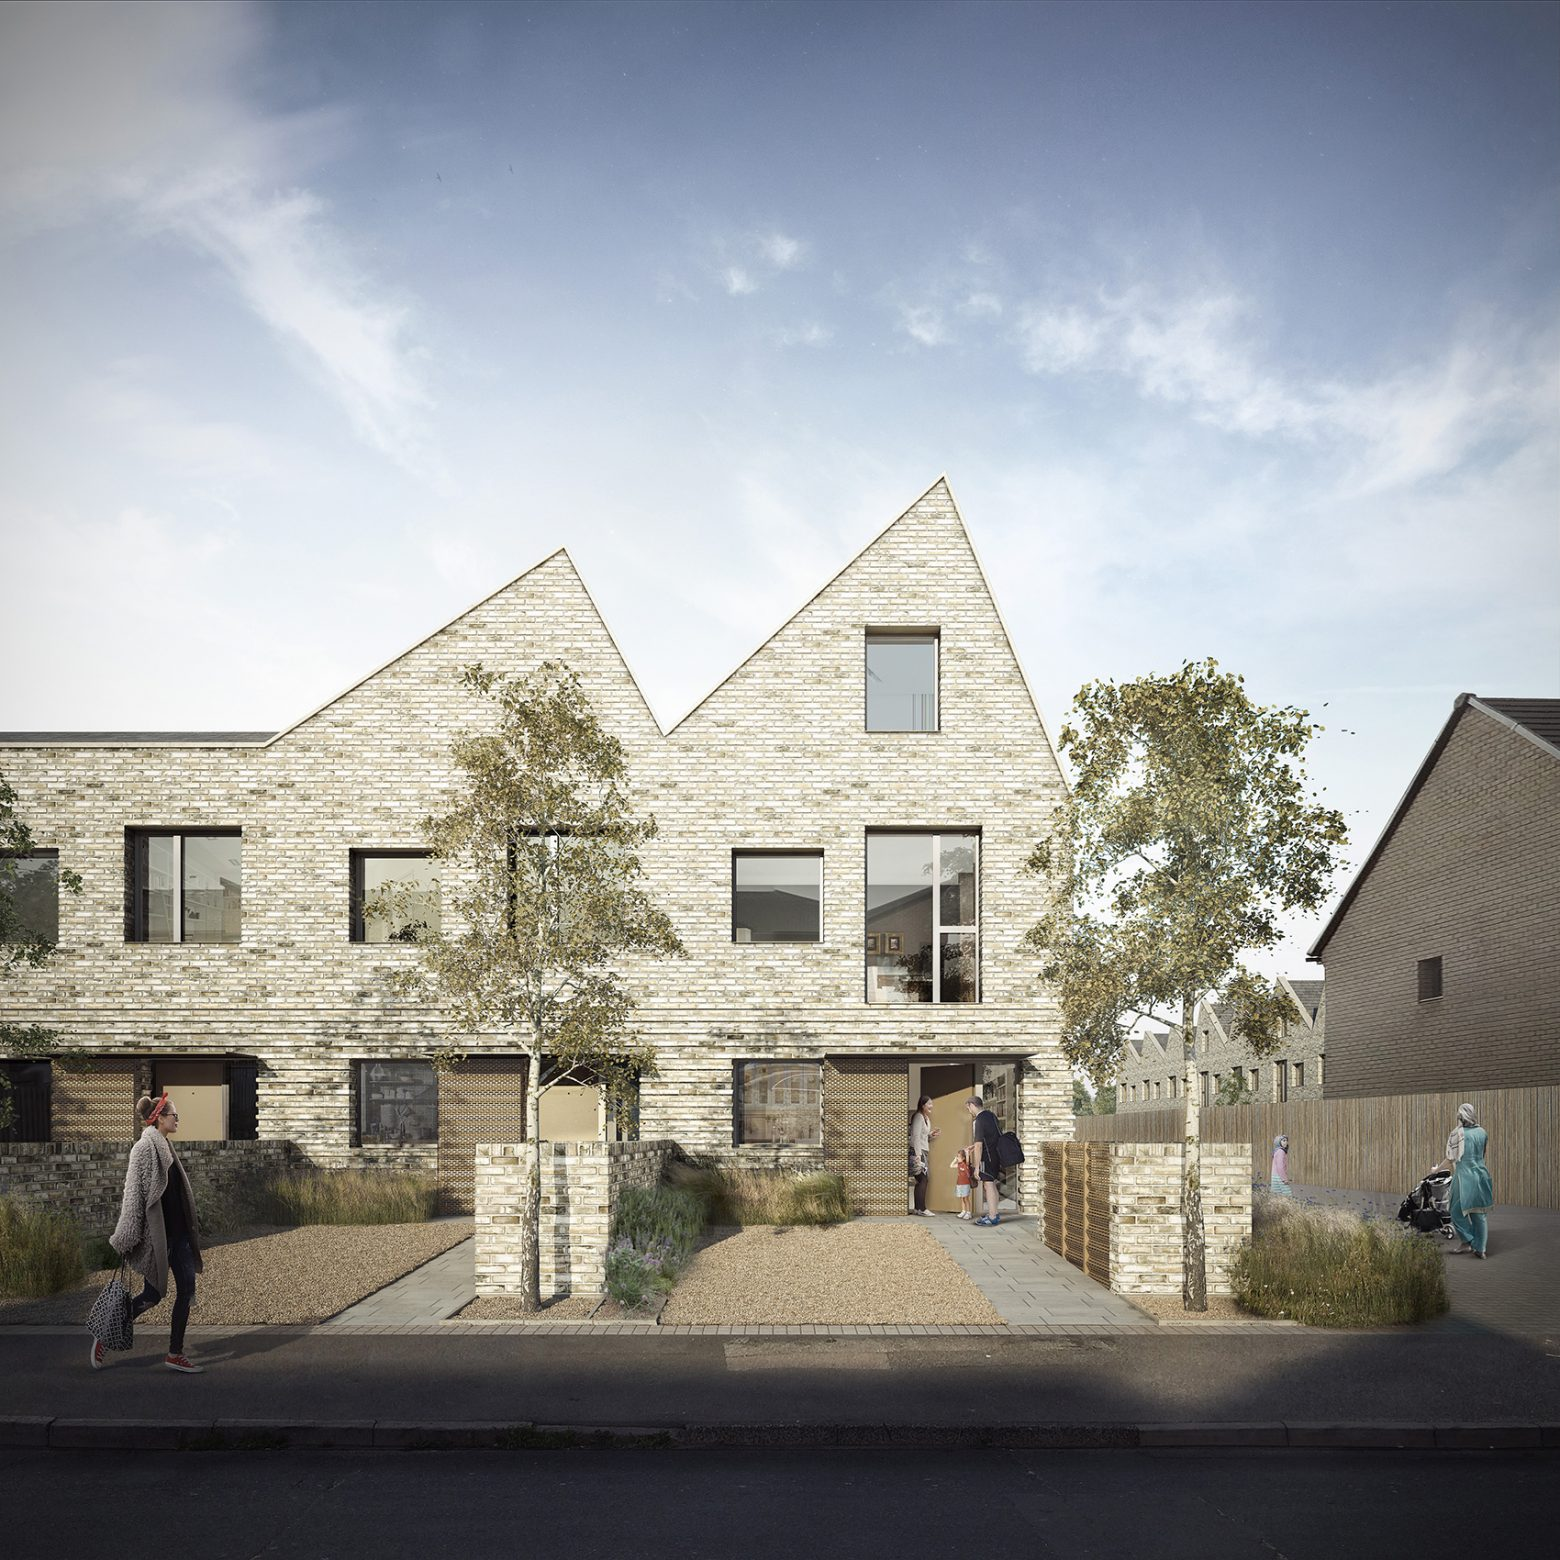 Planning consent granted for Century House